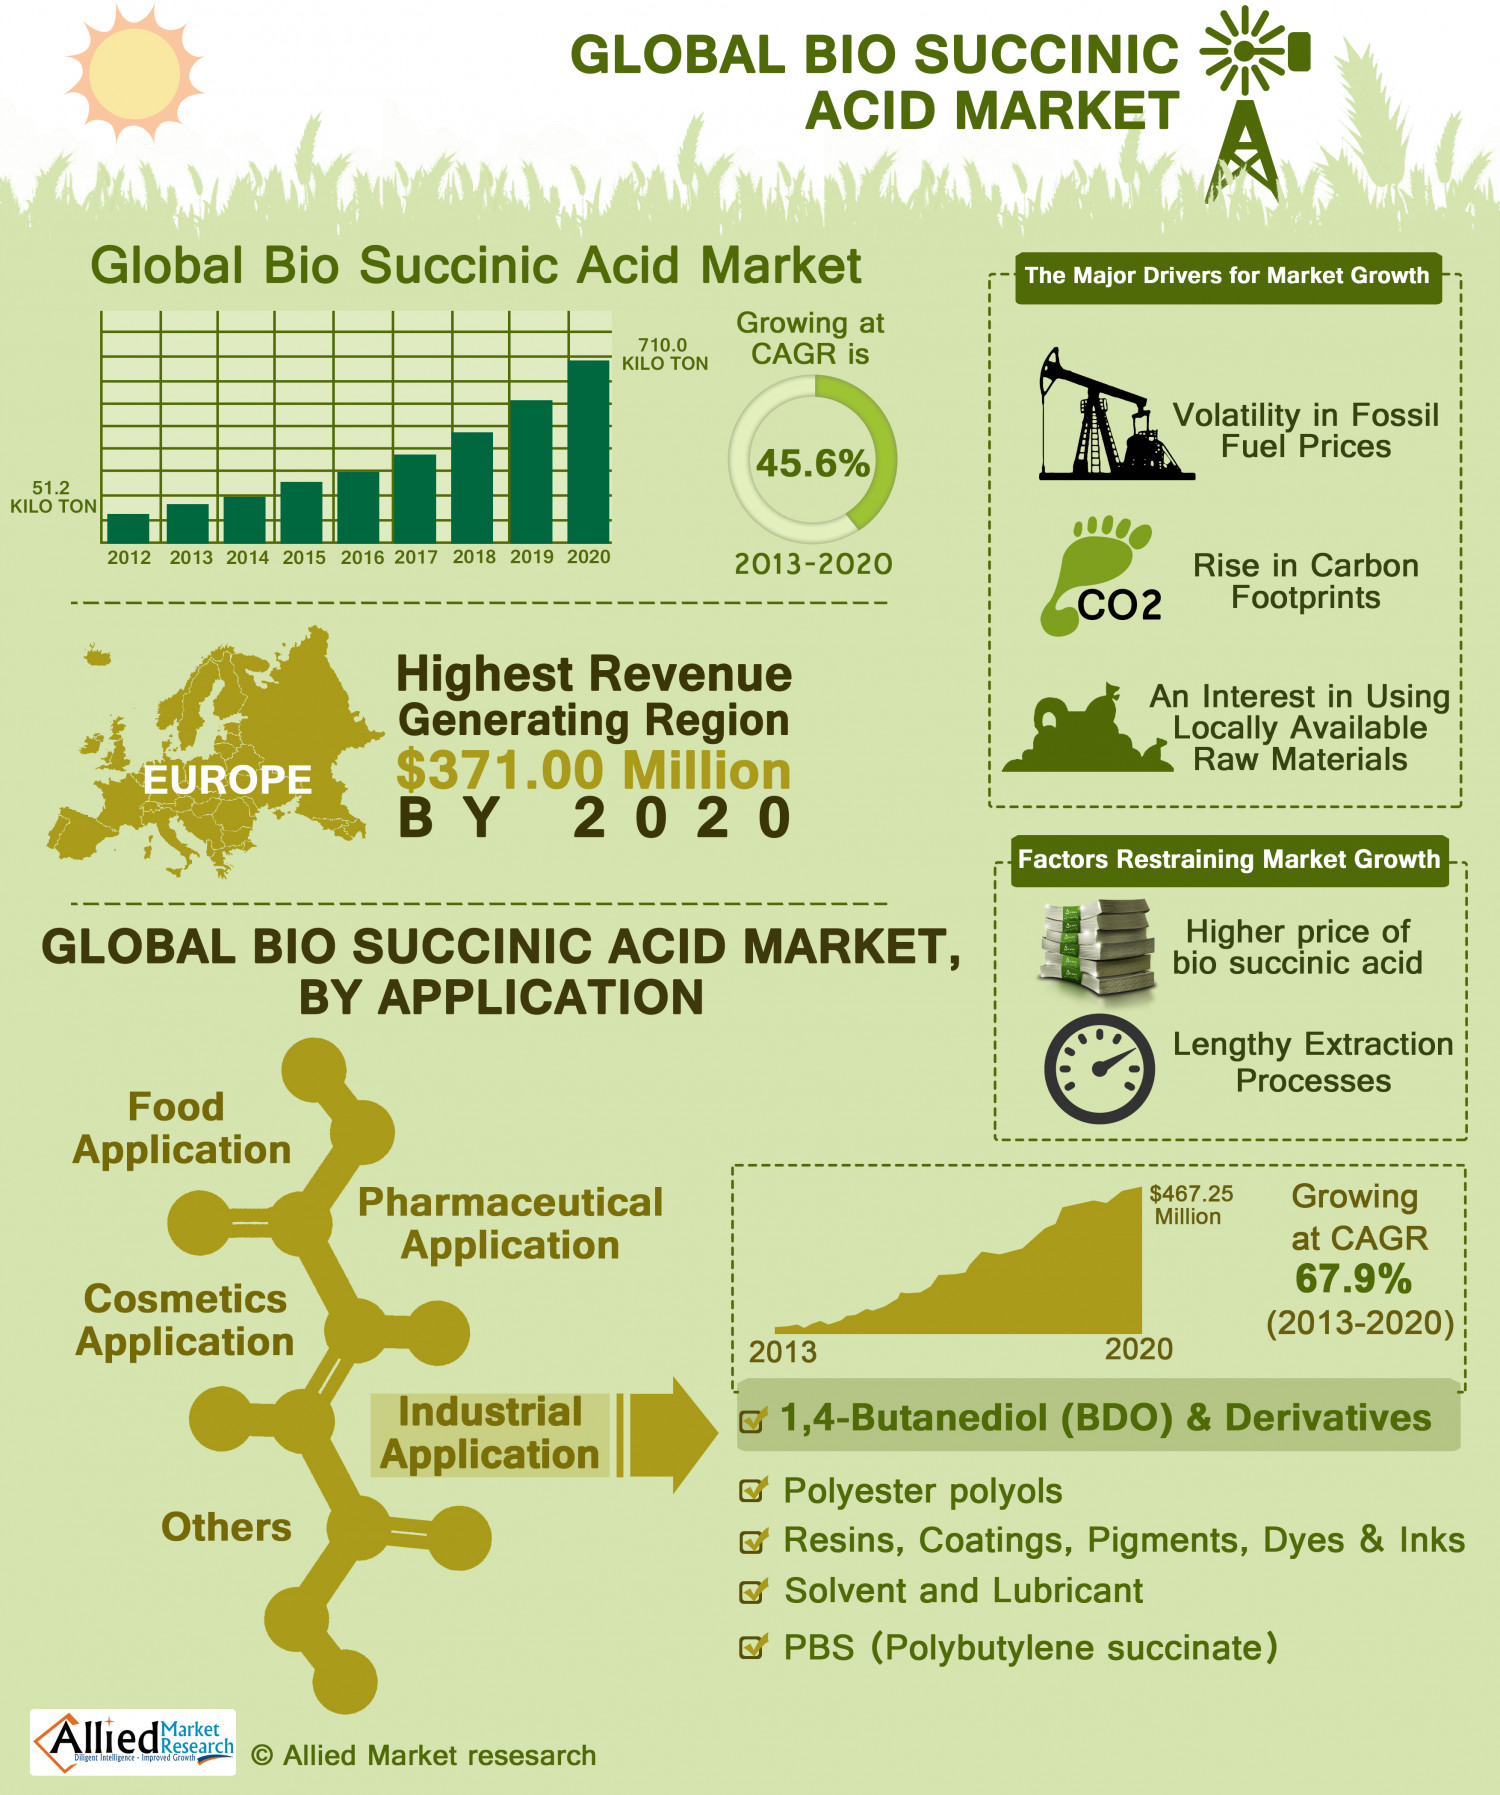 Global Bio Succinic Acid Market Applications And Geography Size Share Trends Analysis Research 0 on marketing on a capacitors